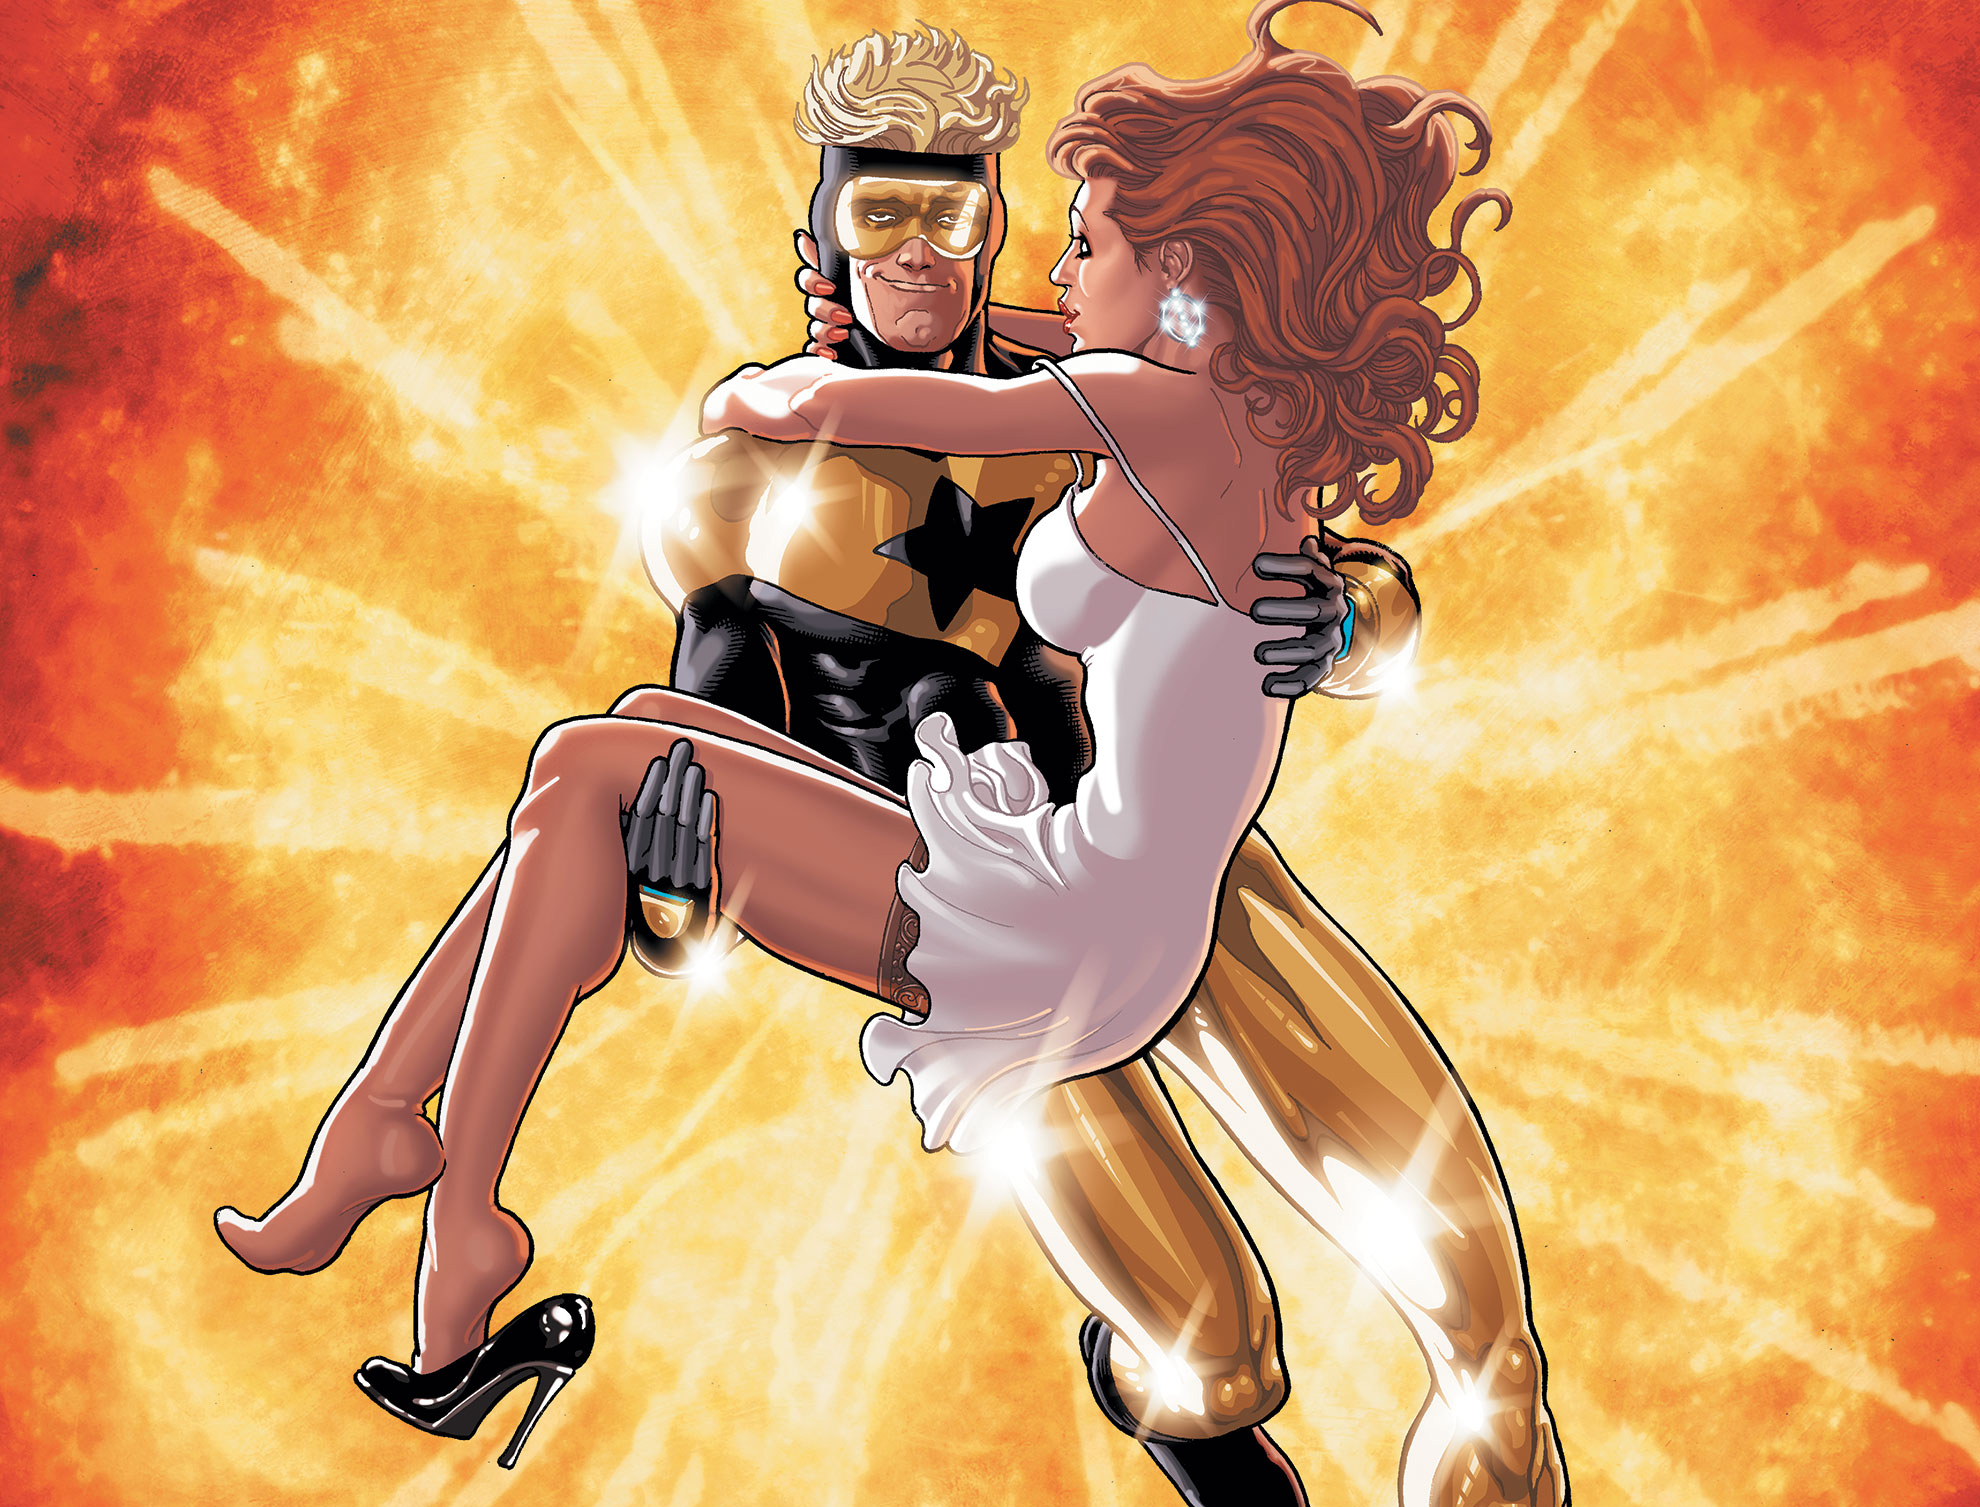 Booster Gold HD Wallpaper Background Image 1980x1507 ID 1980x1507